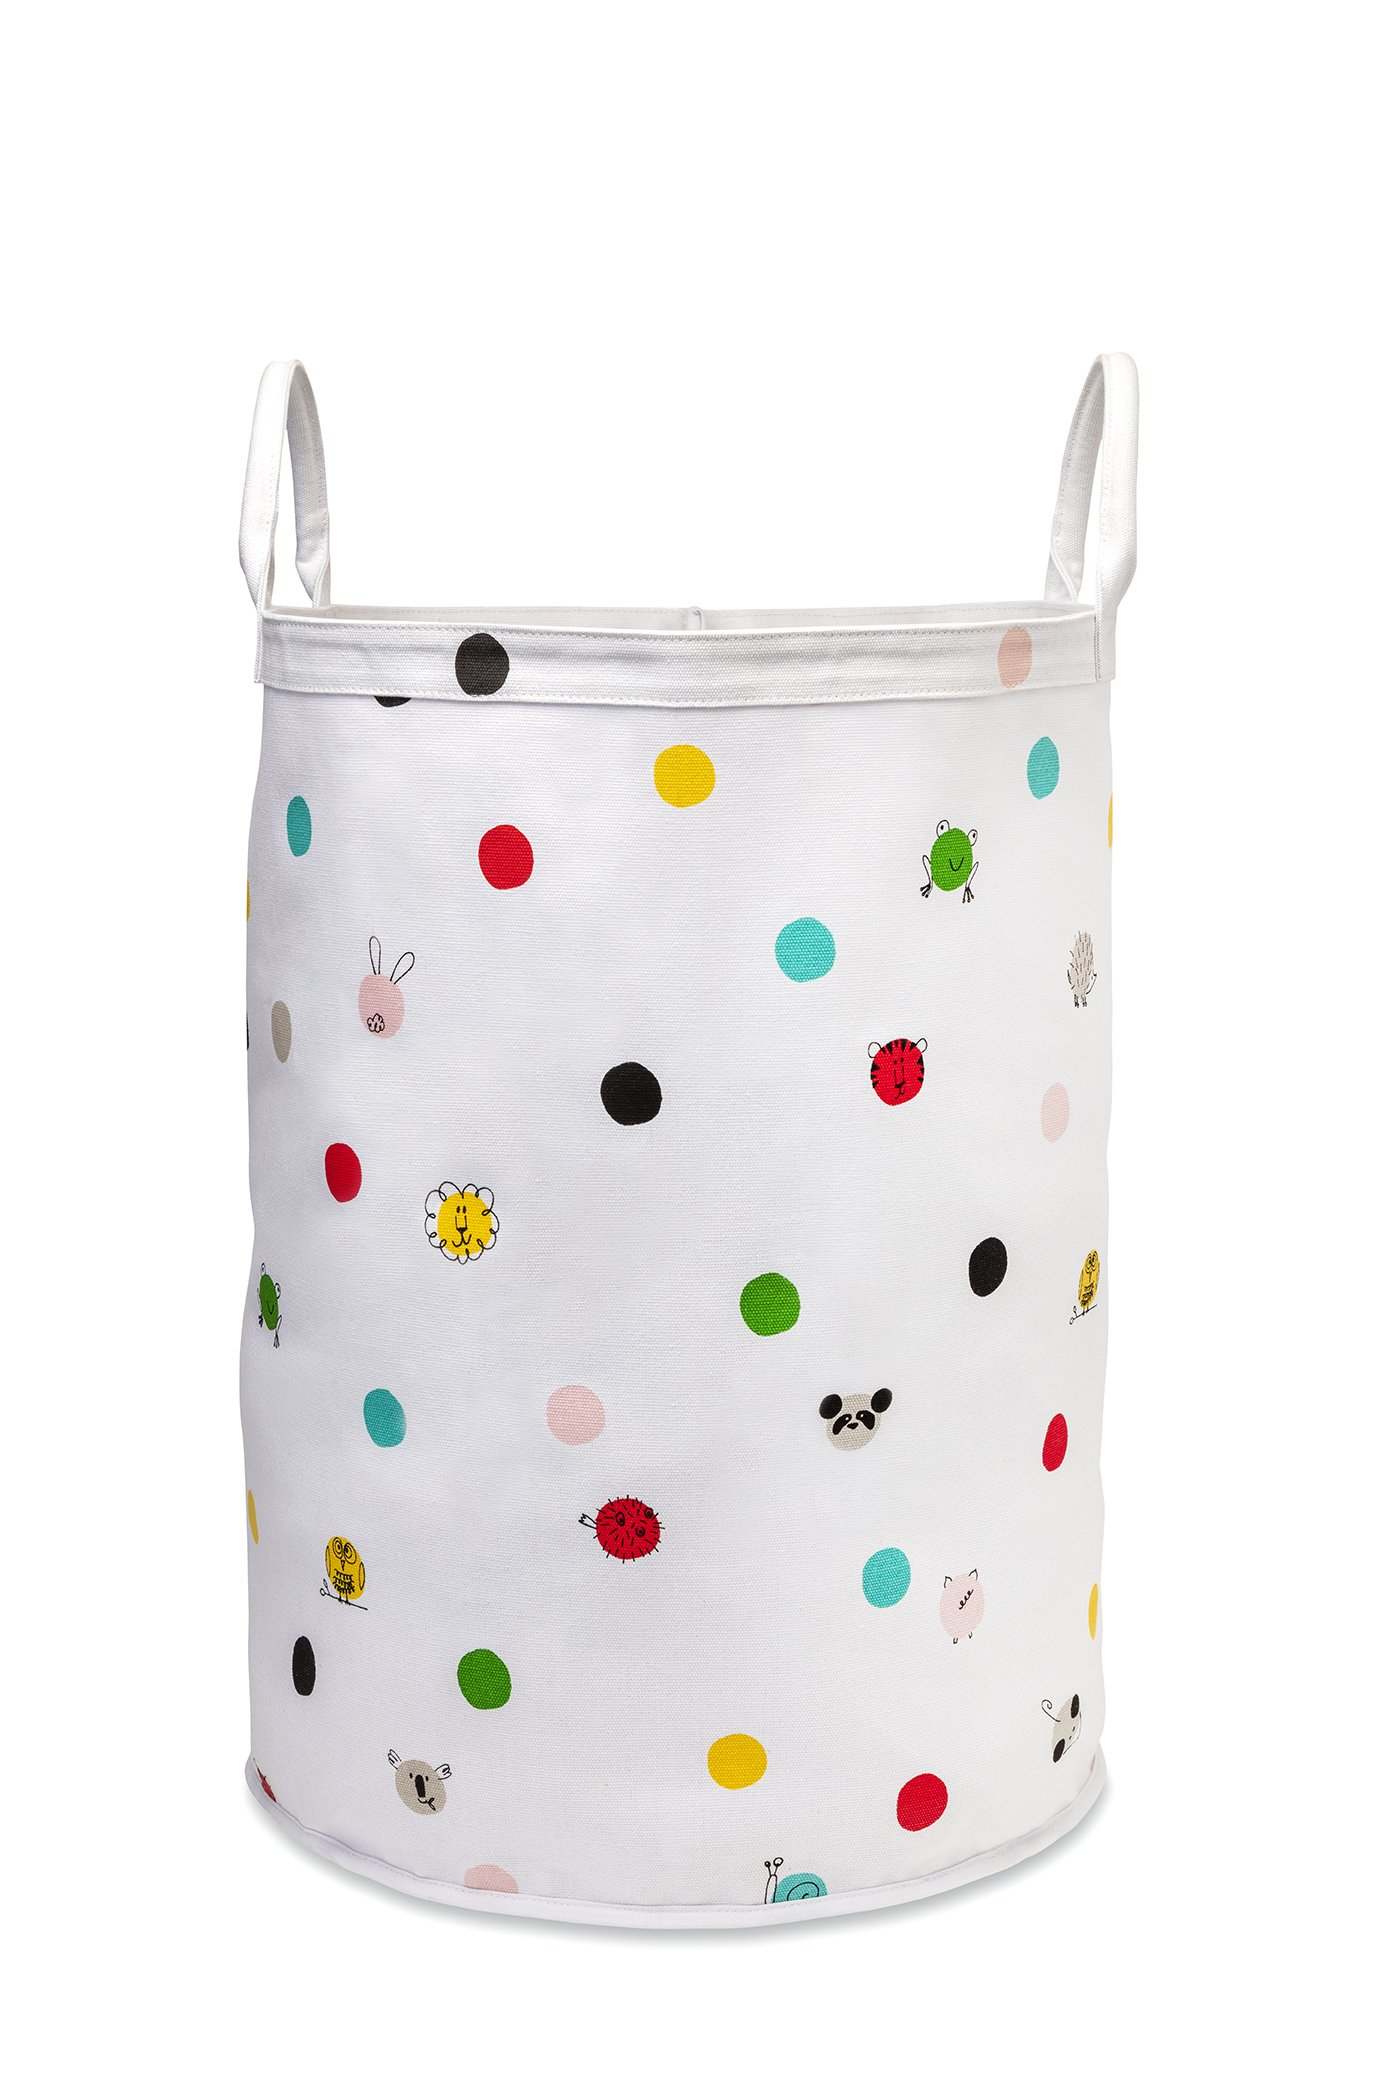 Kate Spade New York Baby Canvas Storage Bin Large, Dots